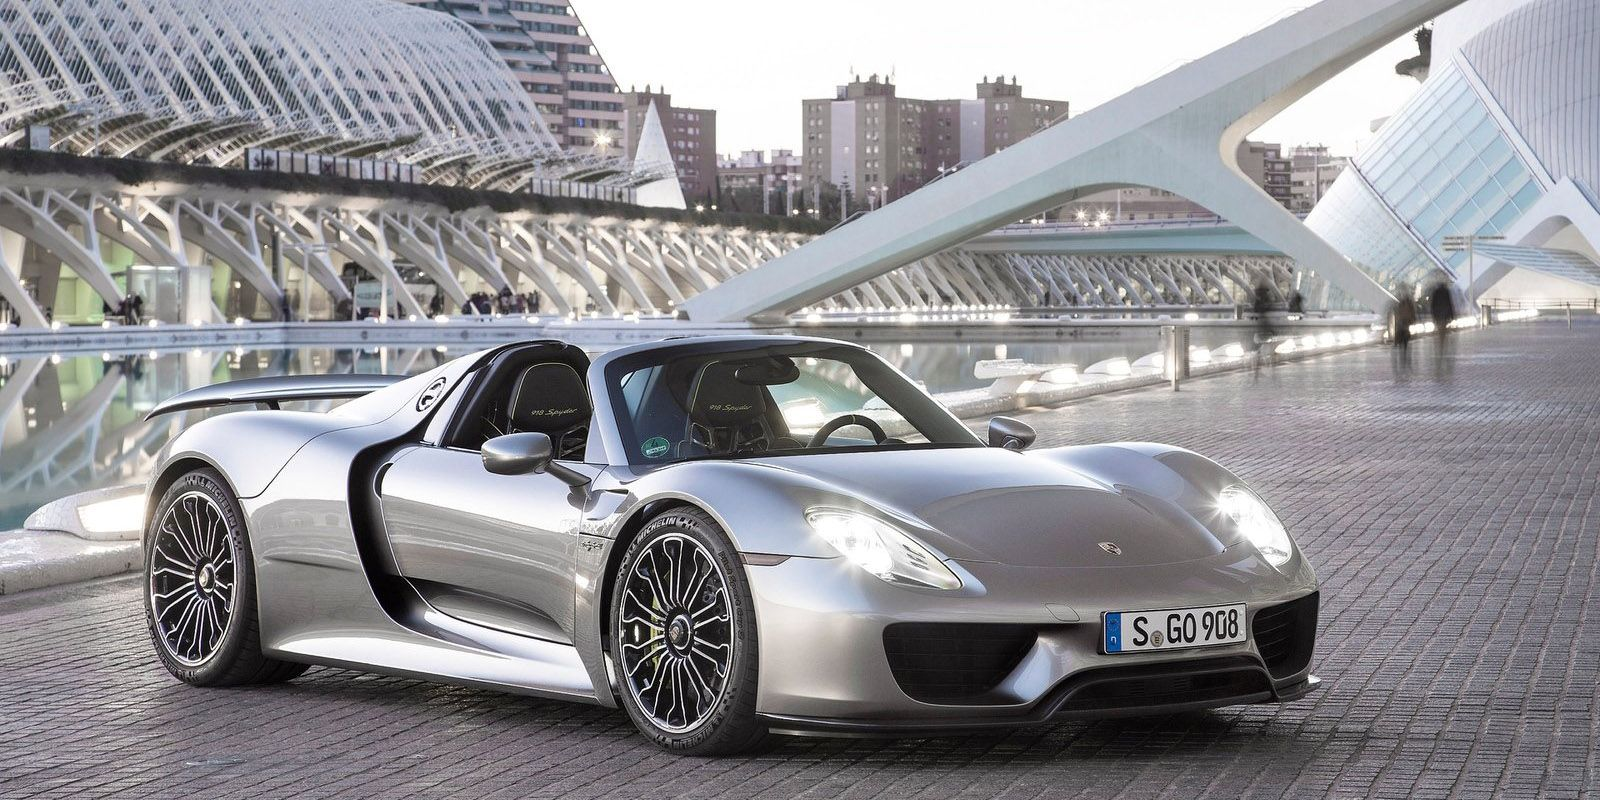 With 608 gas-powered bhp turning the rear wheels and 279 electric bhp turning the front, the 918 Spyder is a four-wheel-drive 887 bhp supercar. The electric motor has a range of 12 miles and can be charged via engine power, regenerative braking, or charging station.